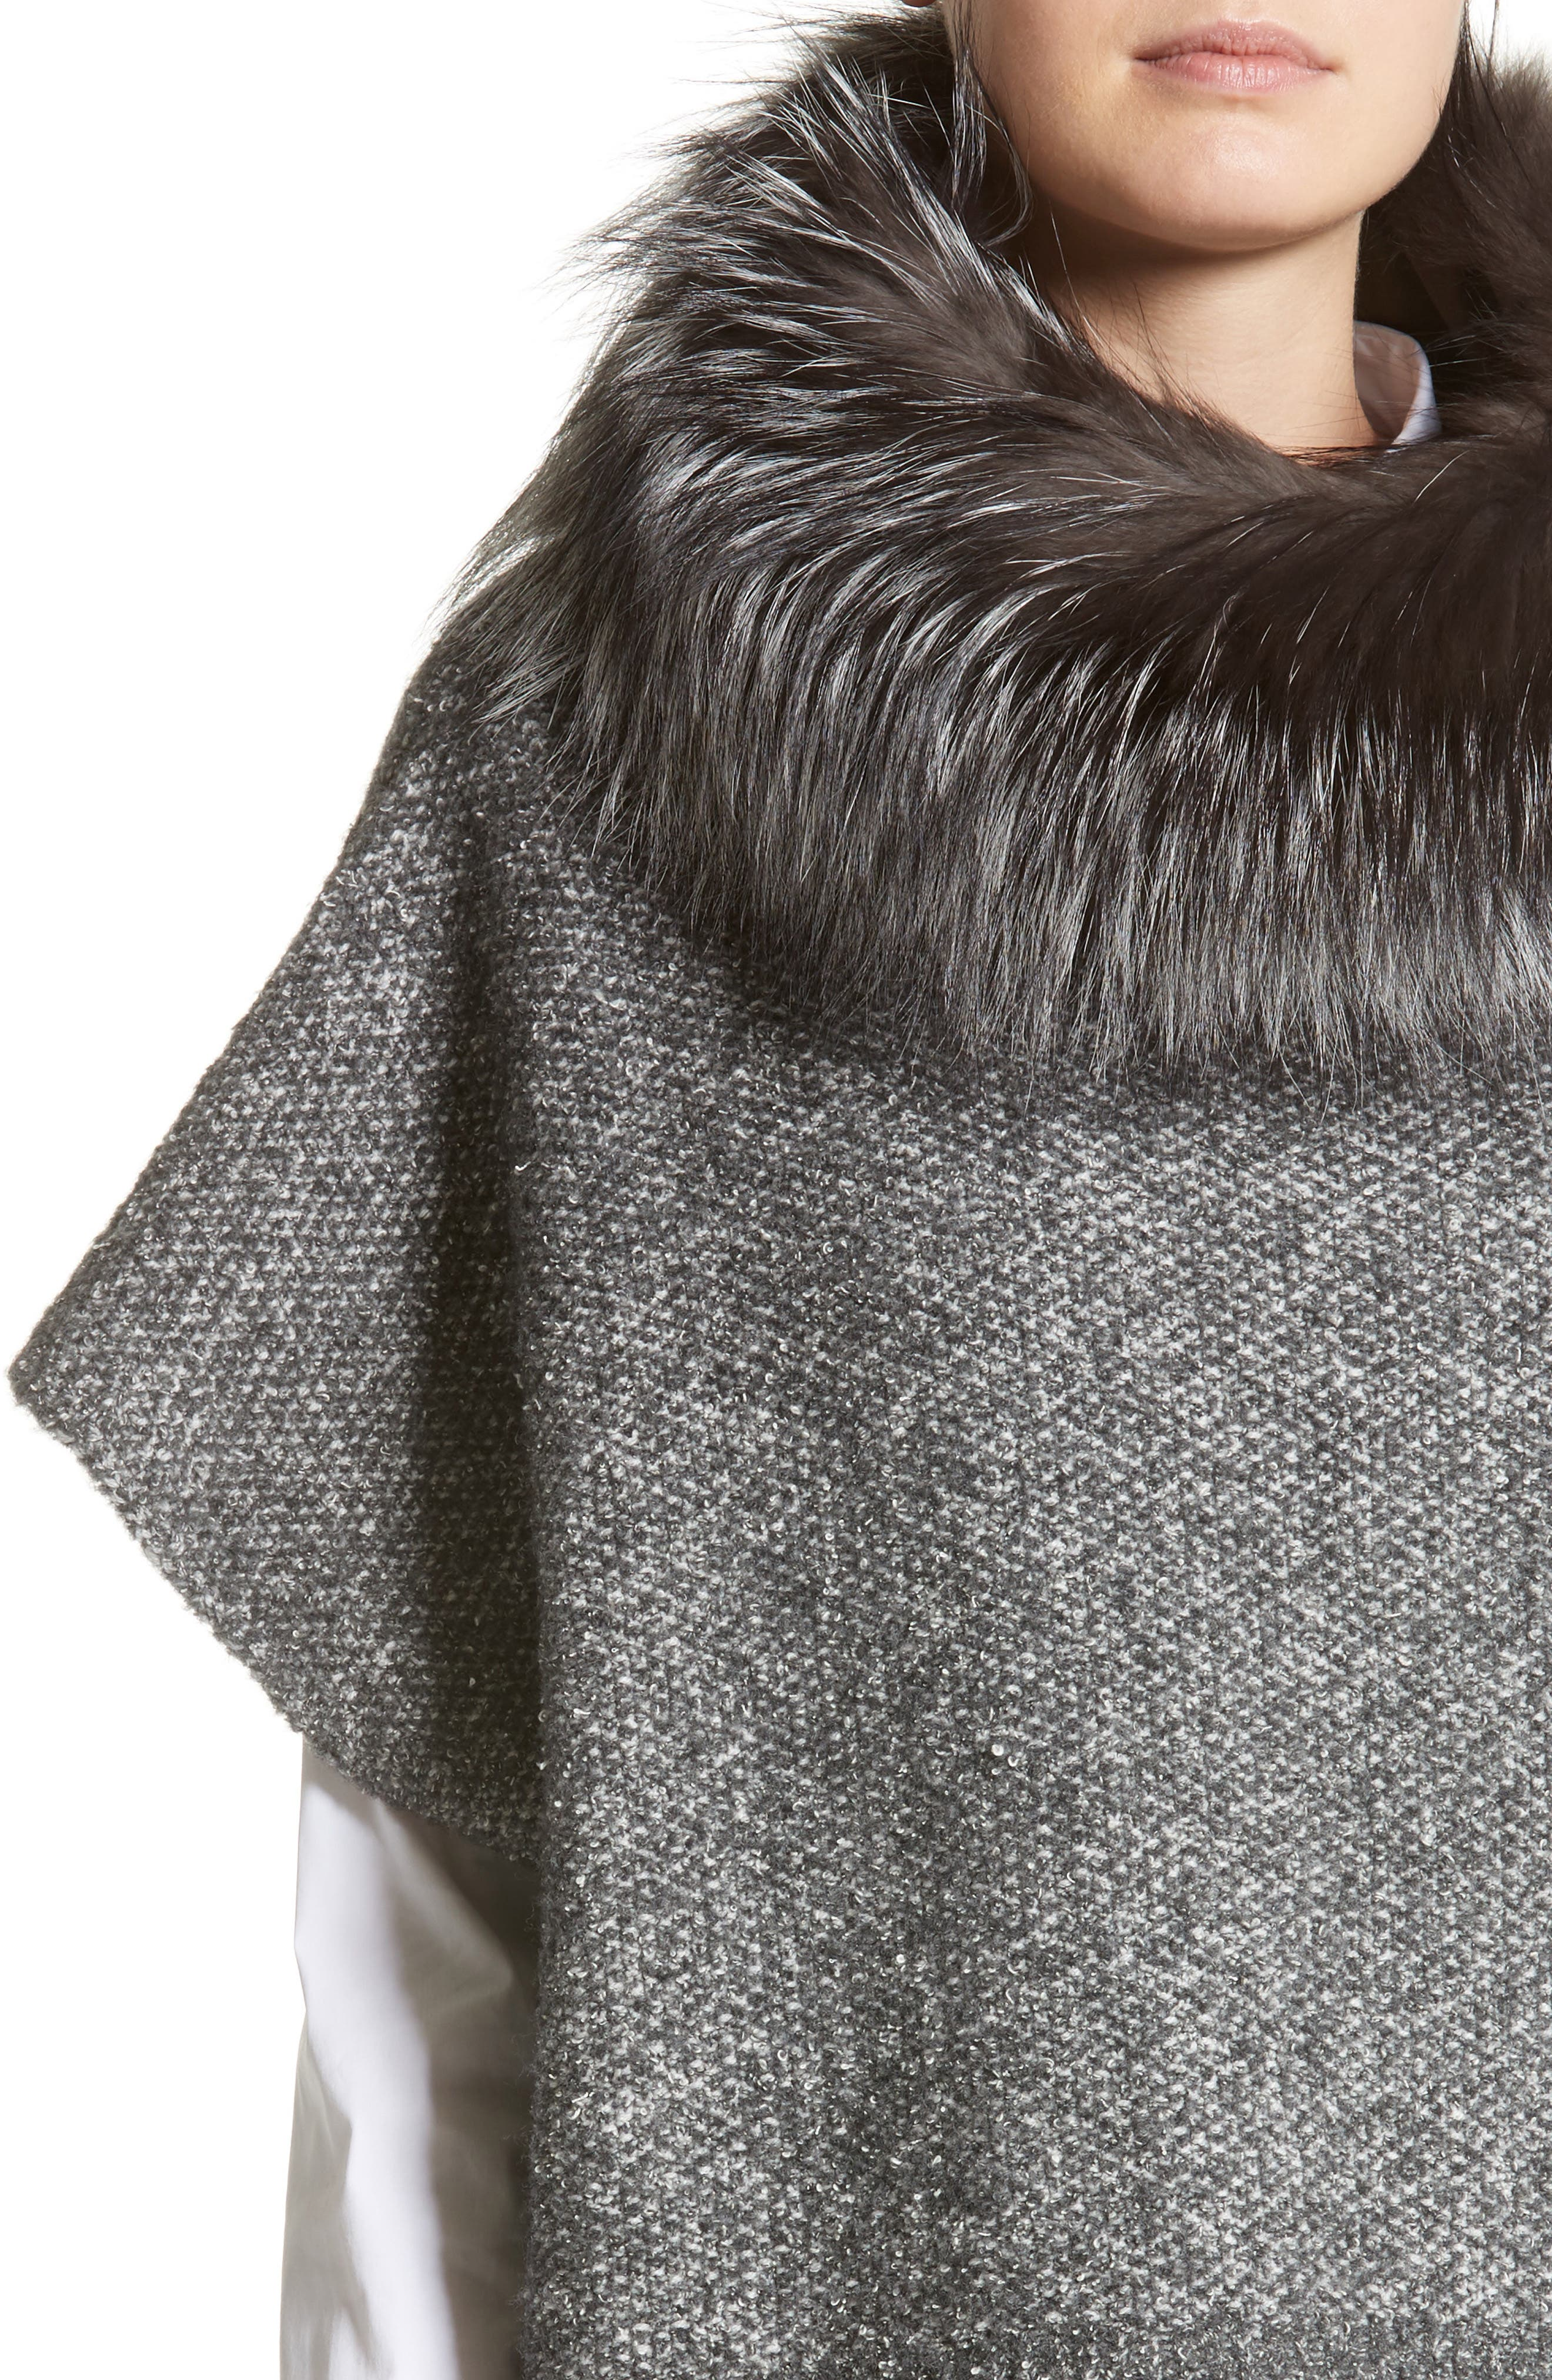 Pebble Tweed Knit Poncho with Genuine Fox Fur Collar,                             Alternate thumbnail 4, color,                             021